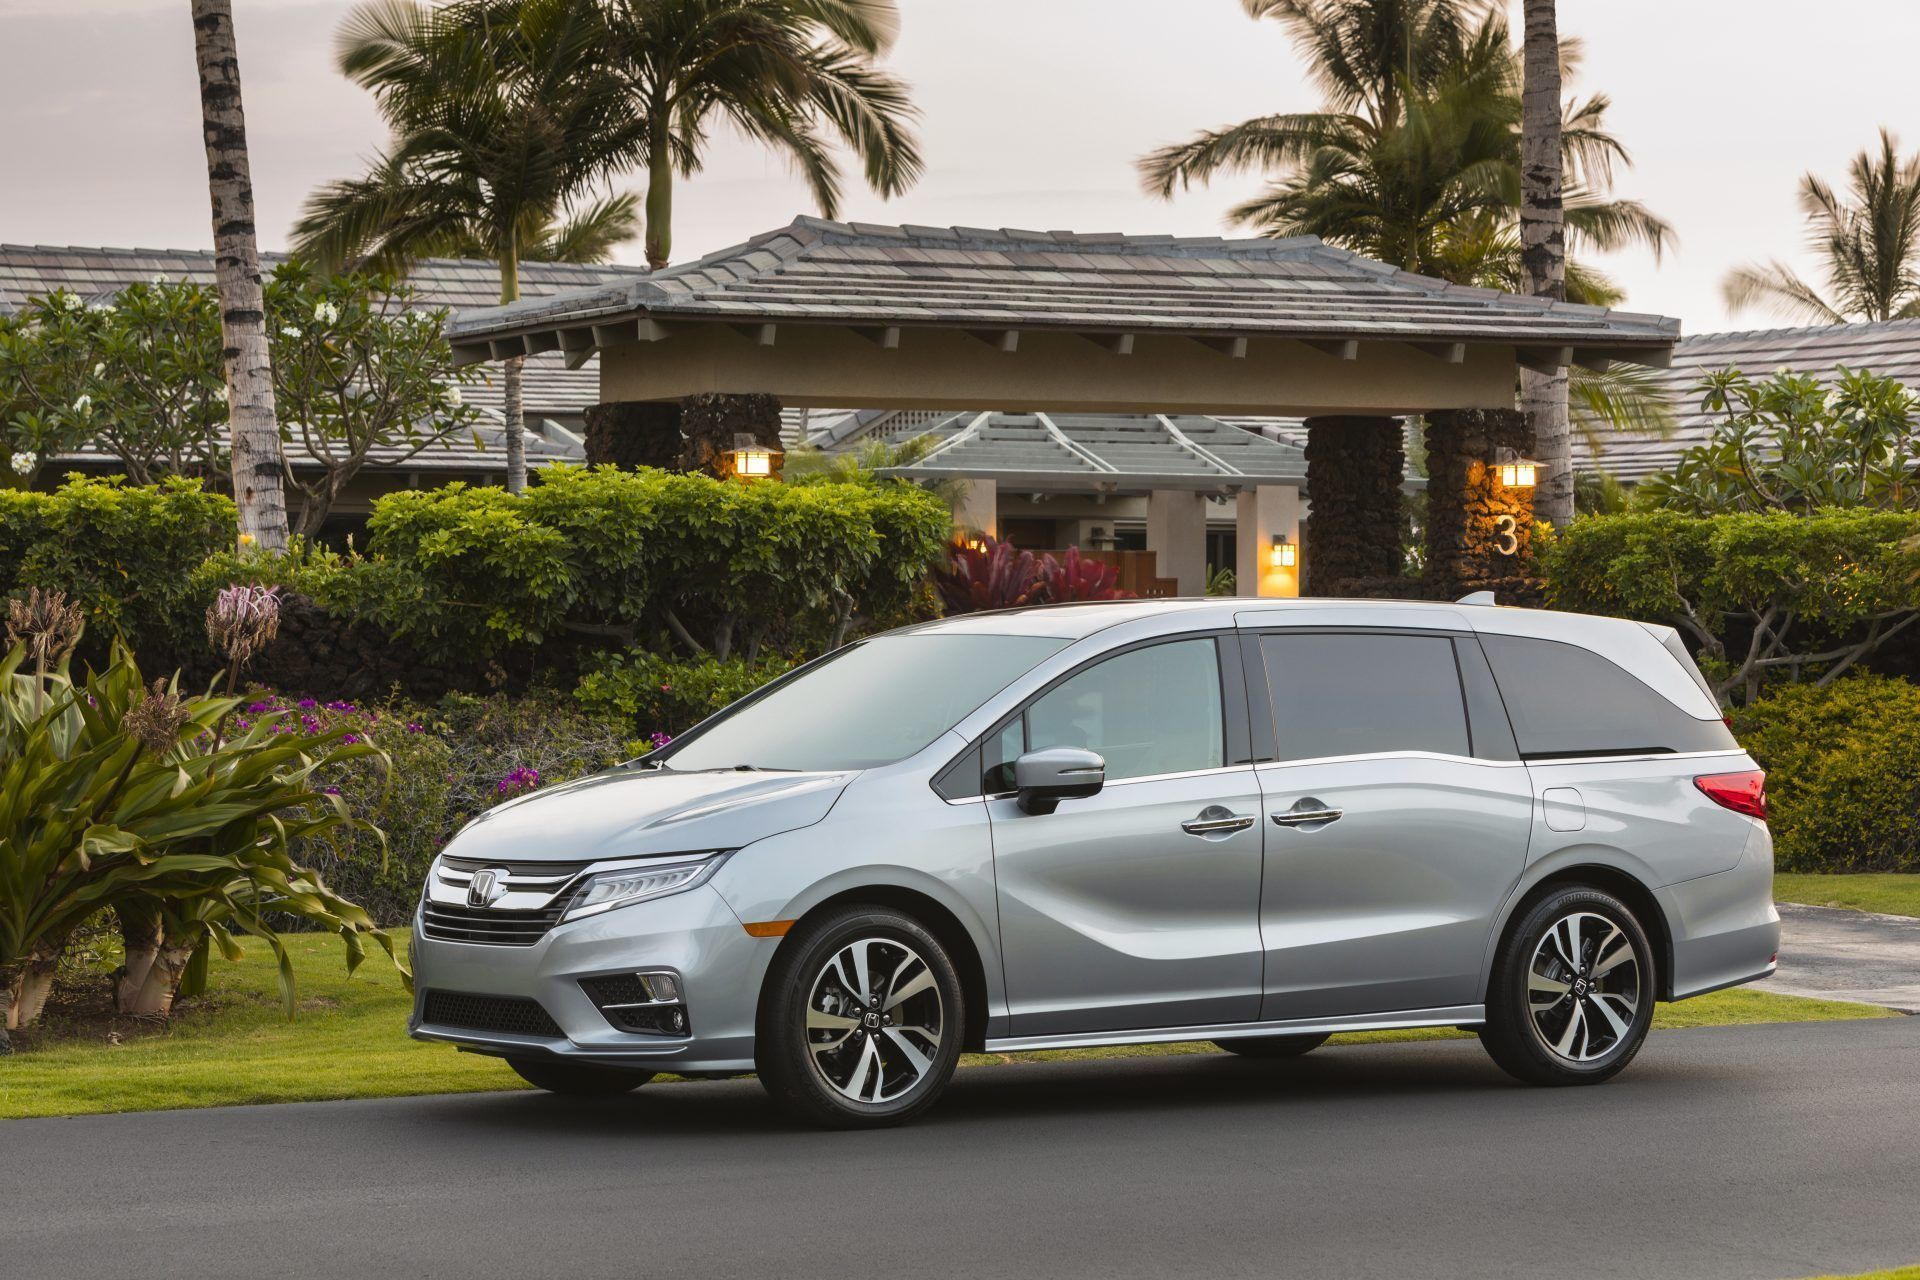 The 2020 Honda Odyssey Gets A Few Upgrades For Its 25th Anniversary Honda Odyssey Honda Minivan Mini Van